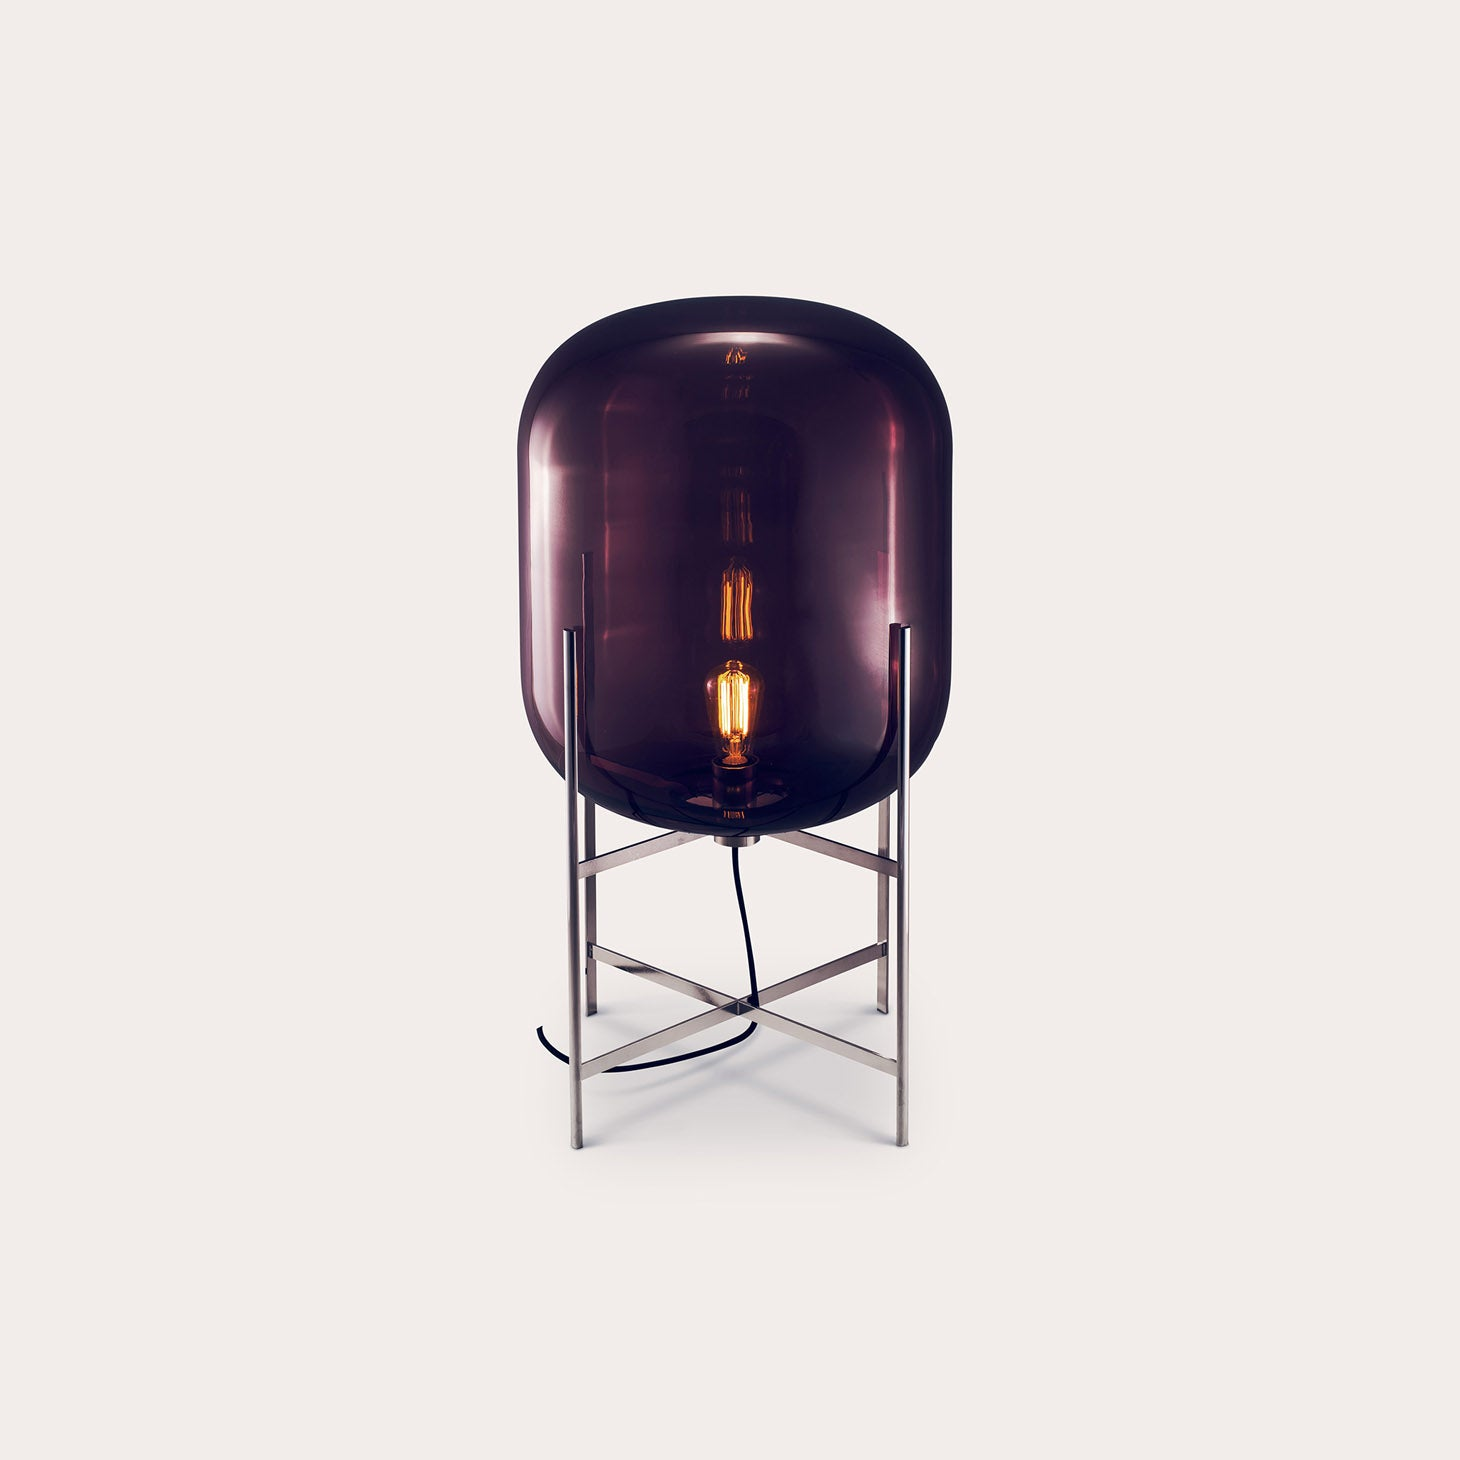 Oda Lighting Sebastian Herkner Designer Furniture Sku: 747-160-10029